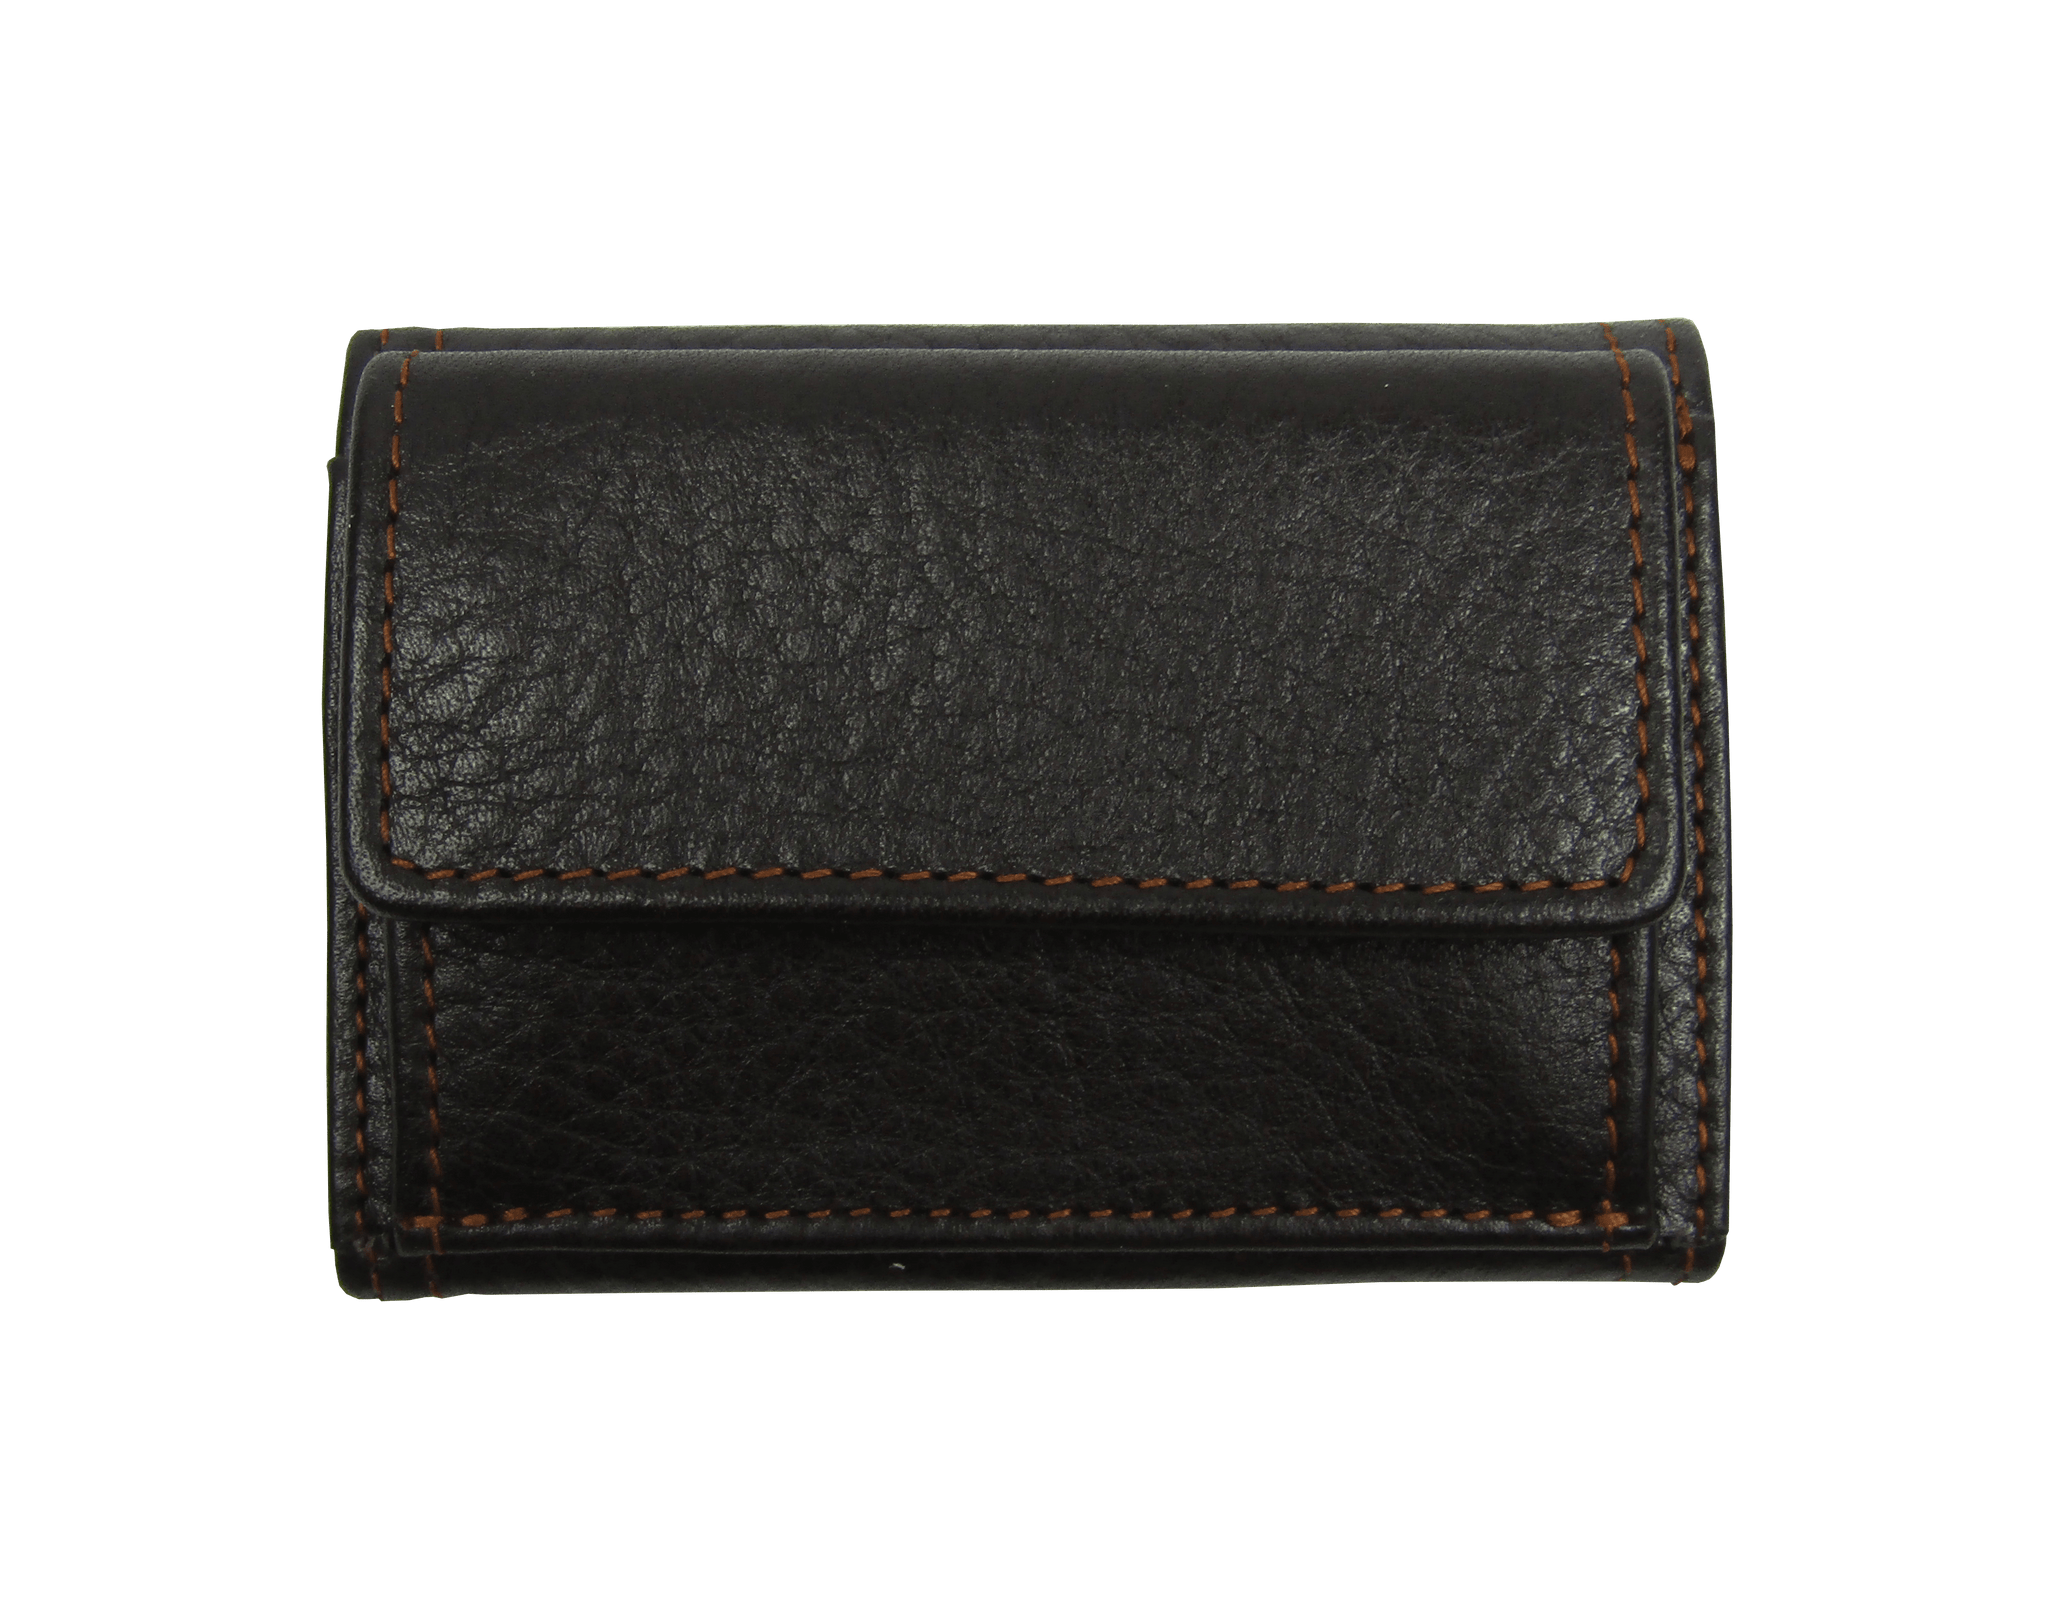 Small Leather Wallet in Brown Grained Calf Leather